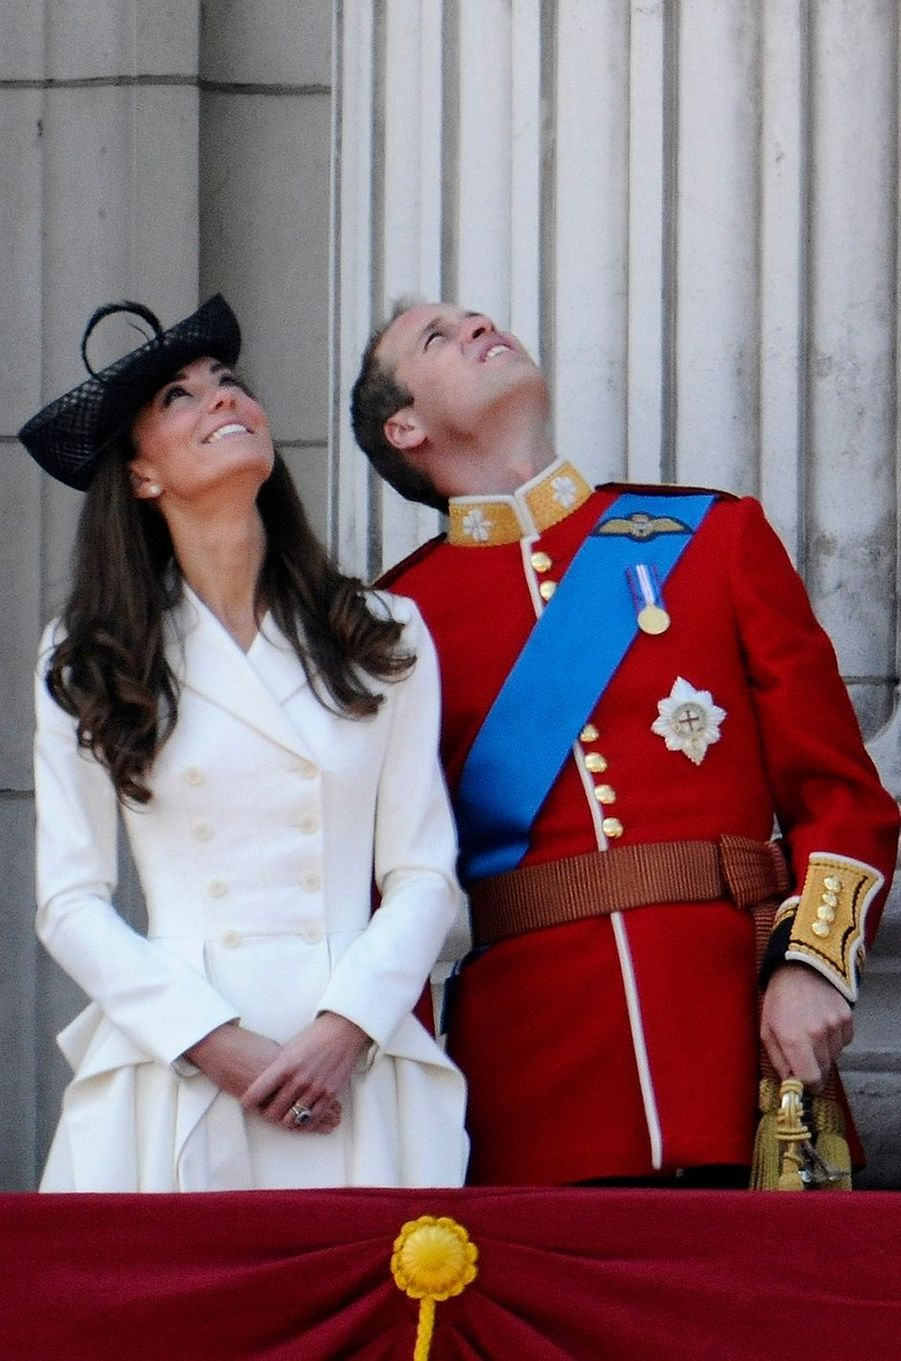 La duchesse Catherine de Cambridge à la cérémonie Trooping the Color à Londres, le 11 juin 2011